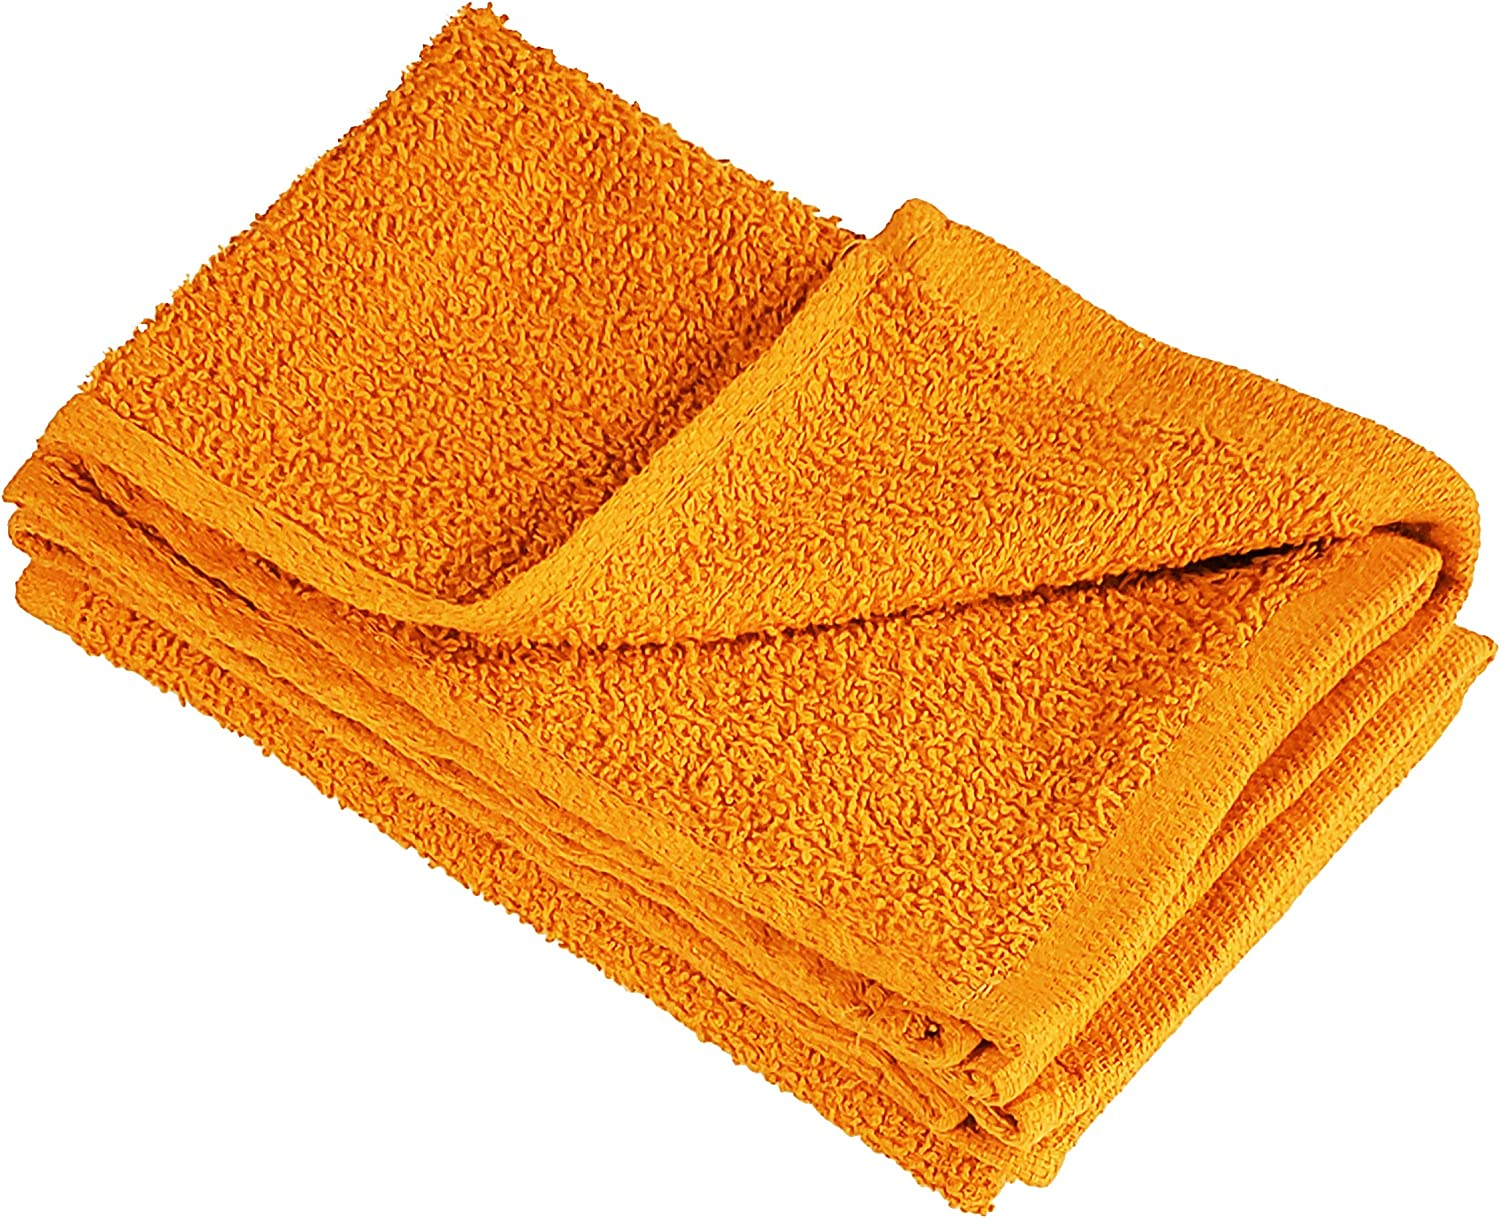 Set of 48 - Affordable Cheap Towels Bulk Rally Wholesa Fingertip Memphis Mall Complete Free Shipping